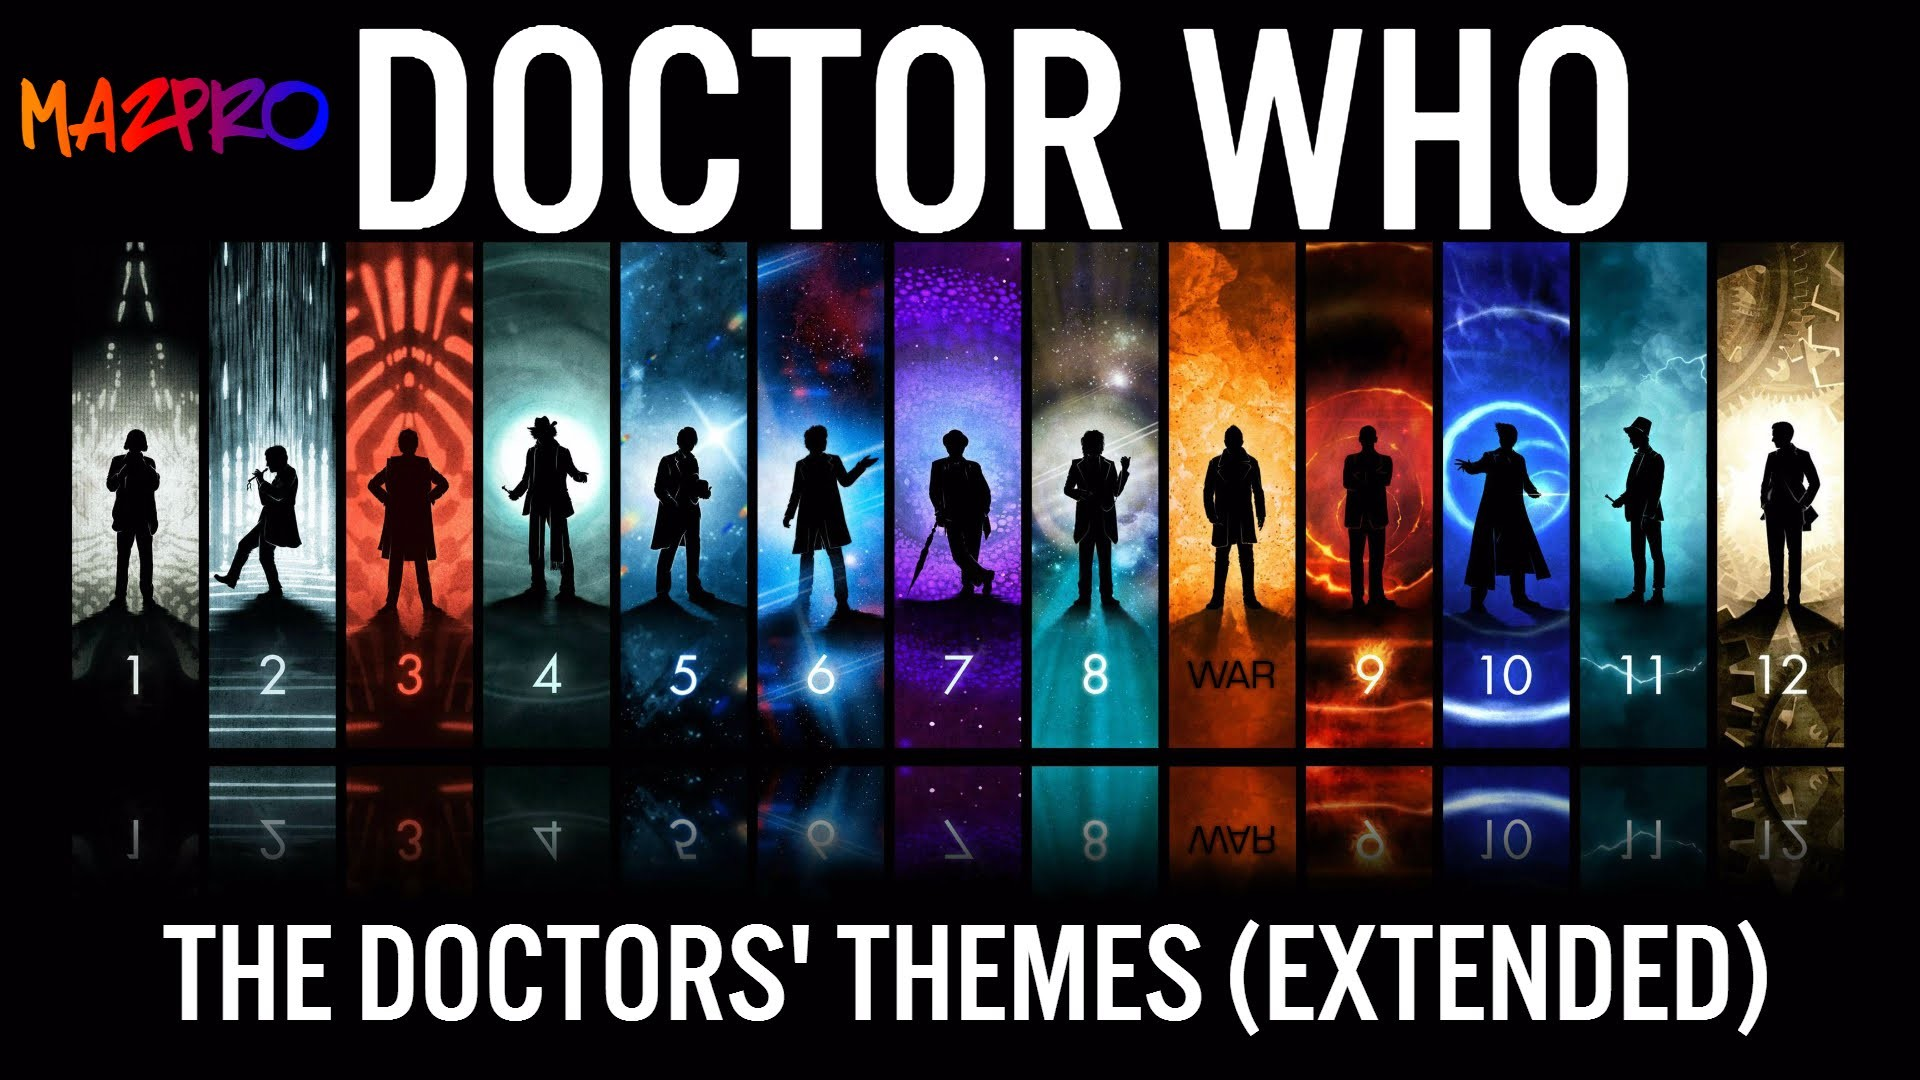 1920x1080 Doctor Who: The Doctor's Themes: 2,3,4,7,8,9,10,11,12, War (EXTENDED) -  YouTube